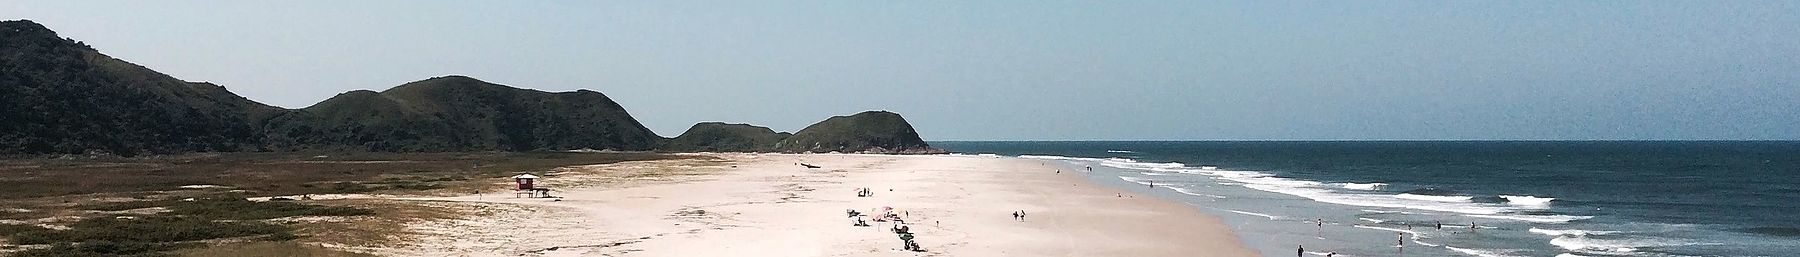 WV banner Coast Ilha do Mel beach panorama.jpg